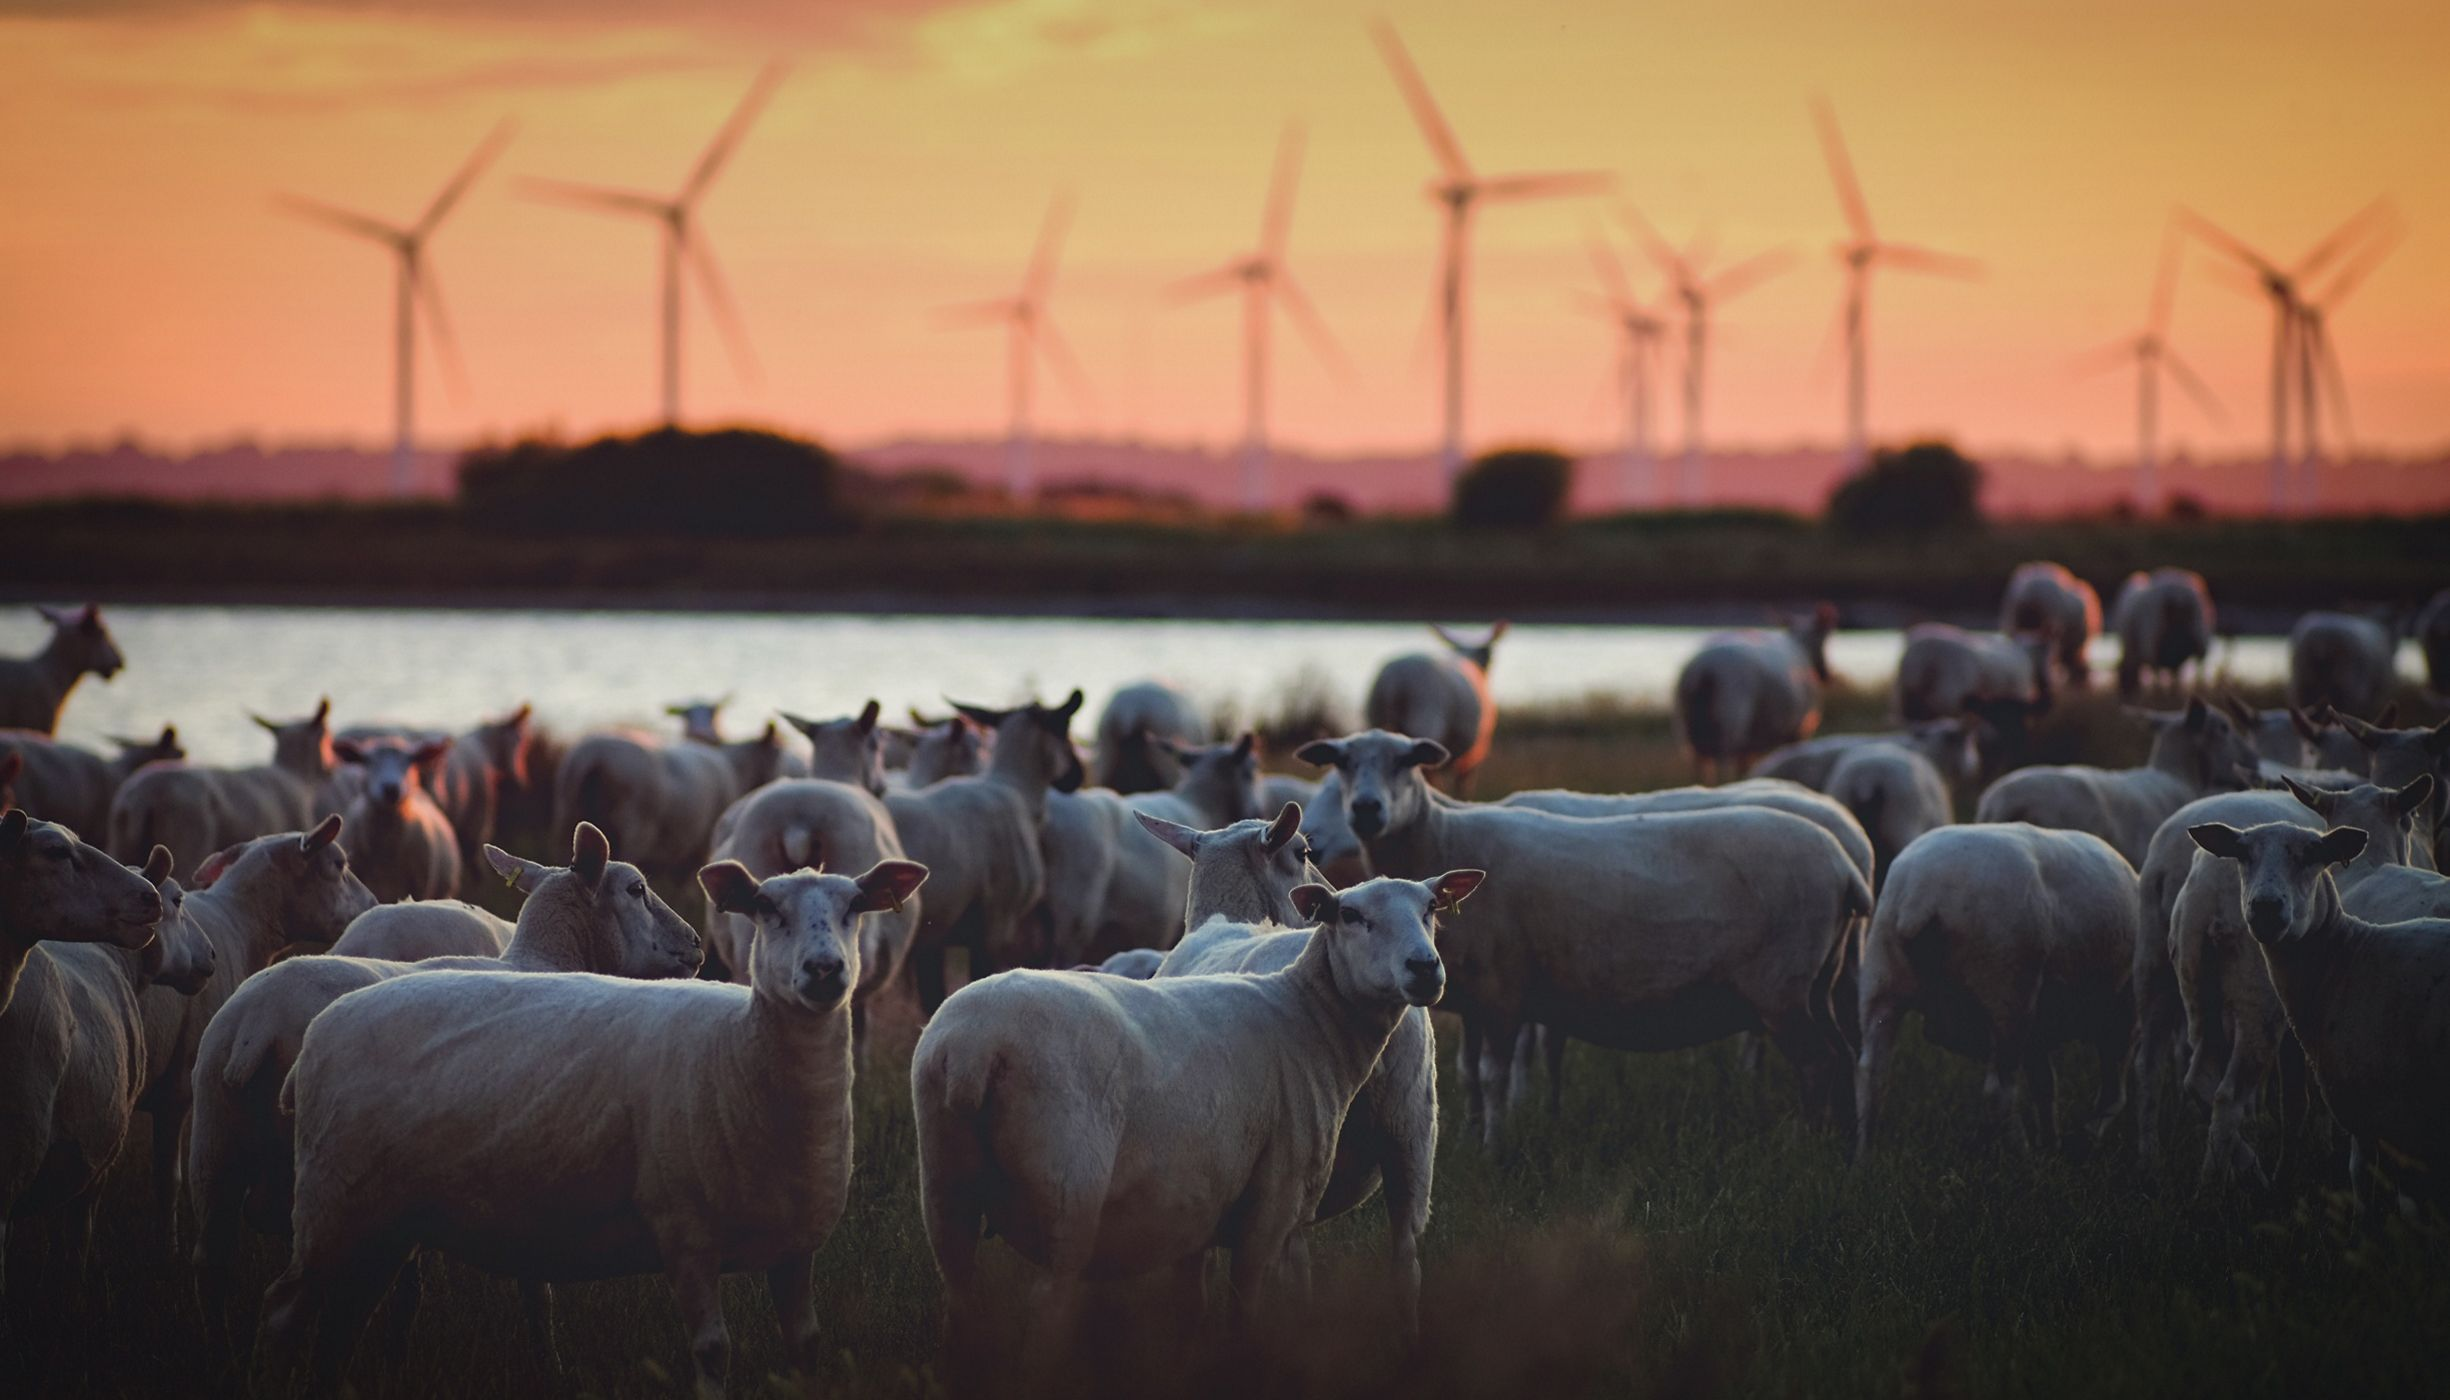 Sheep in a field with wind turbines in the background